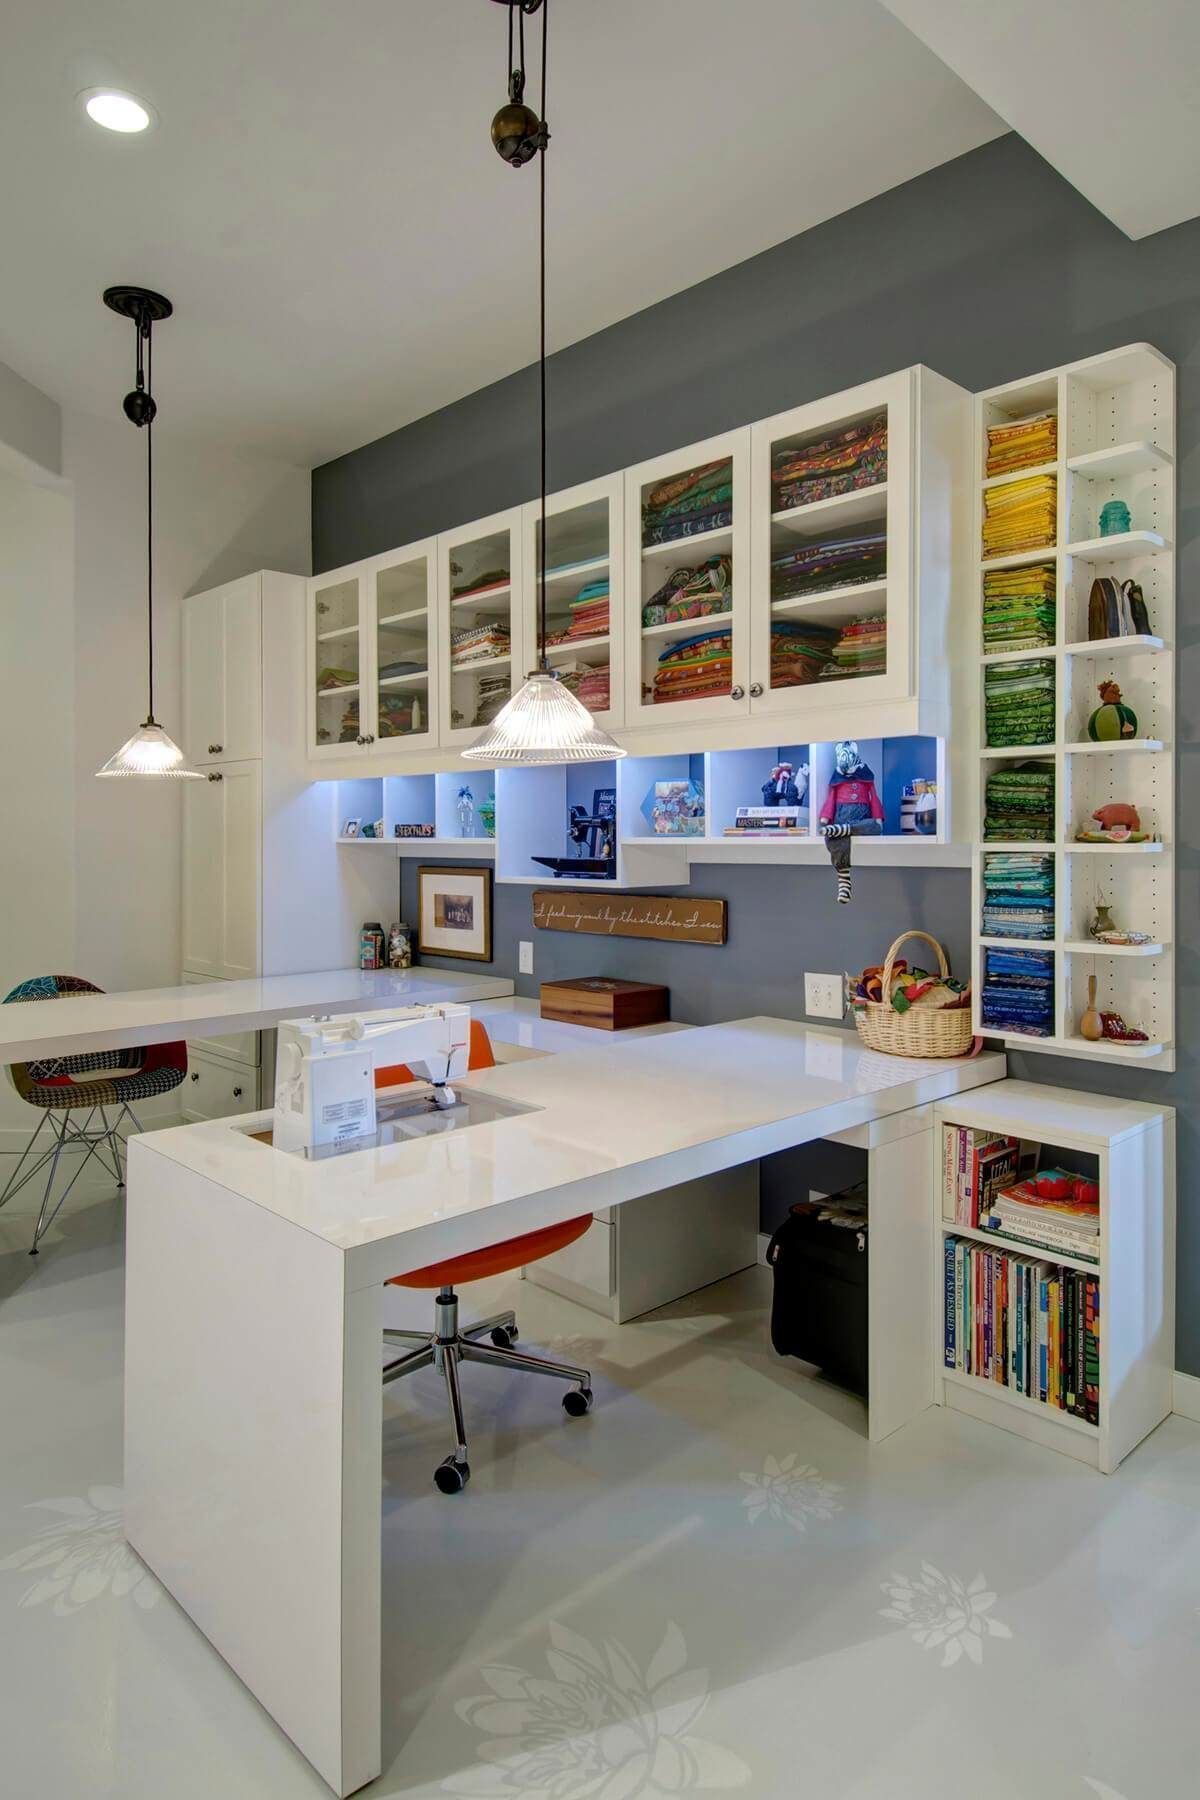 Craft Room Ideas 23 Craft And Home Ideas Craft Room Design